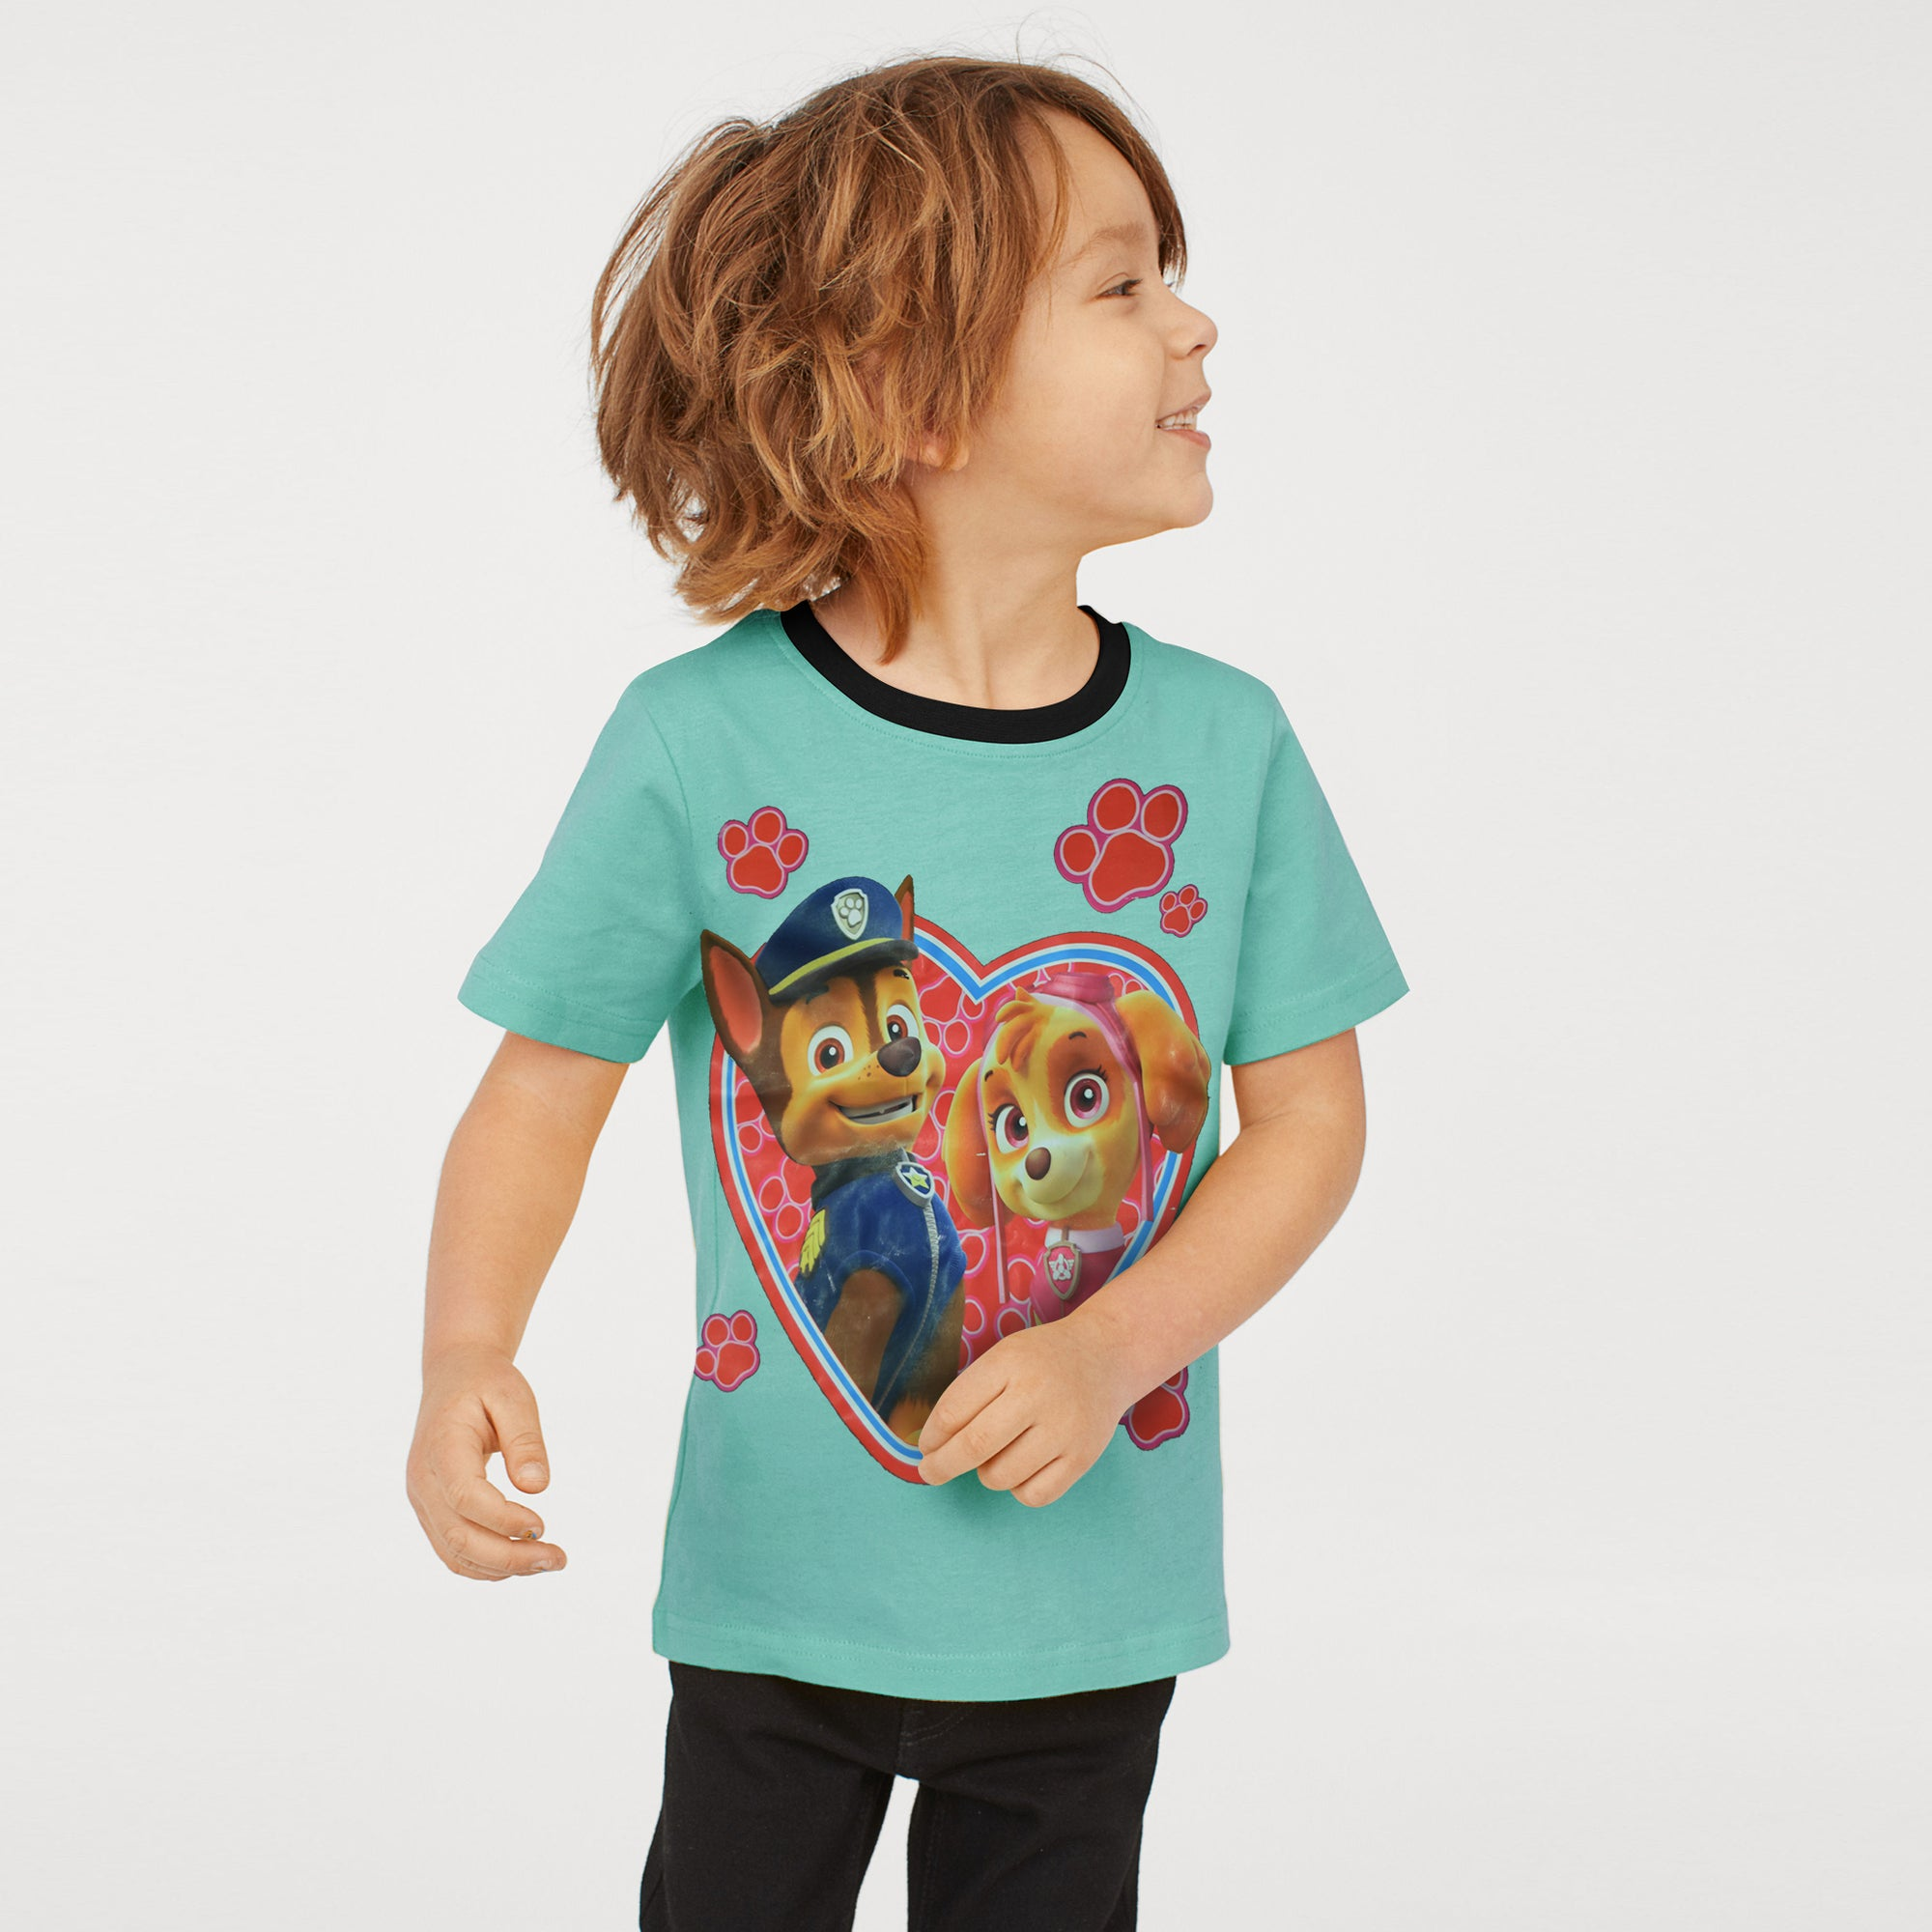 H&M Crew Neck Single Jersey T Shirt For Kids-Cyan Green-BE8343